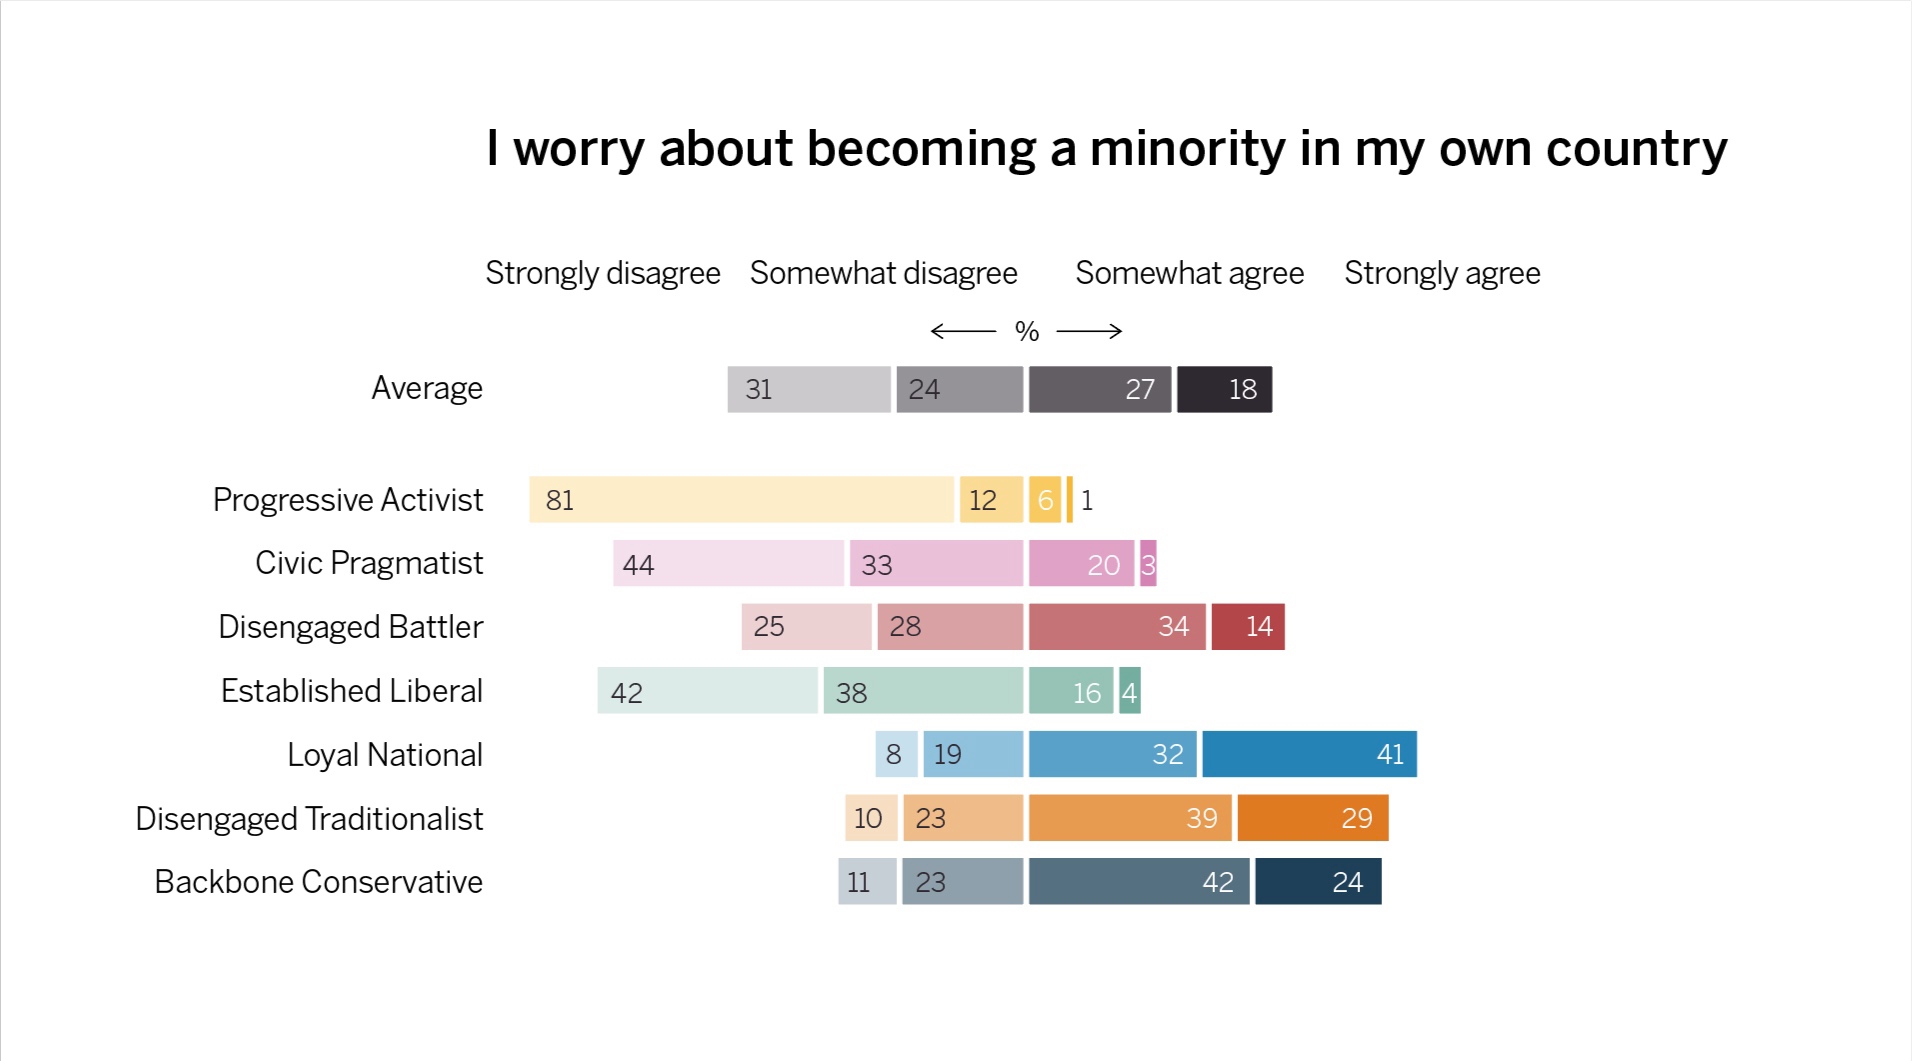 Worry about becoming a minority, by segment